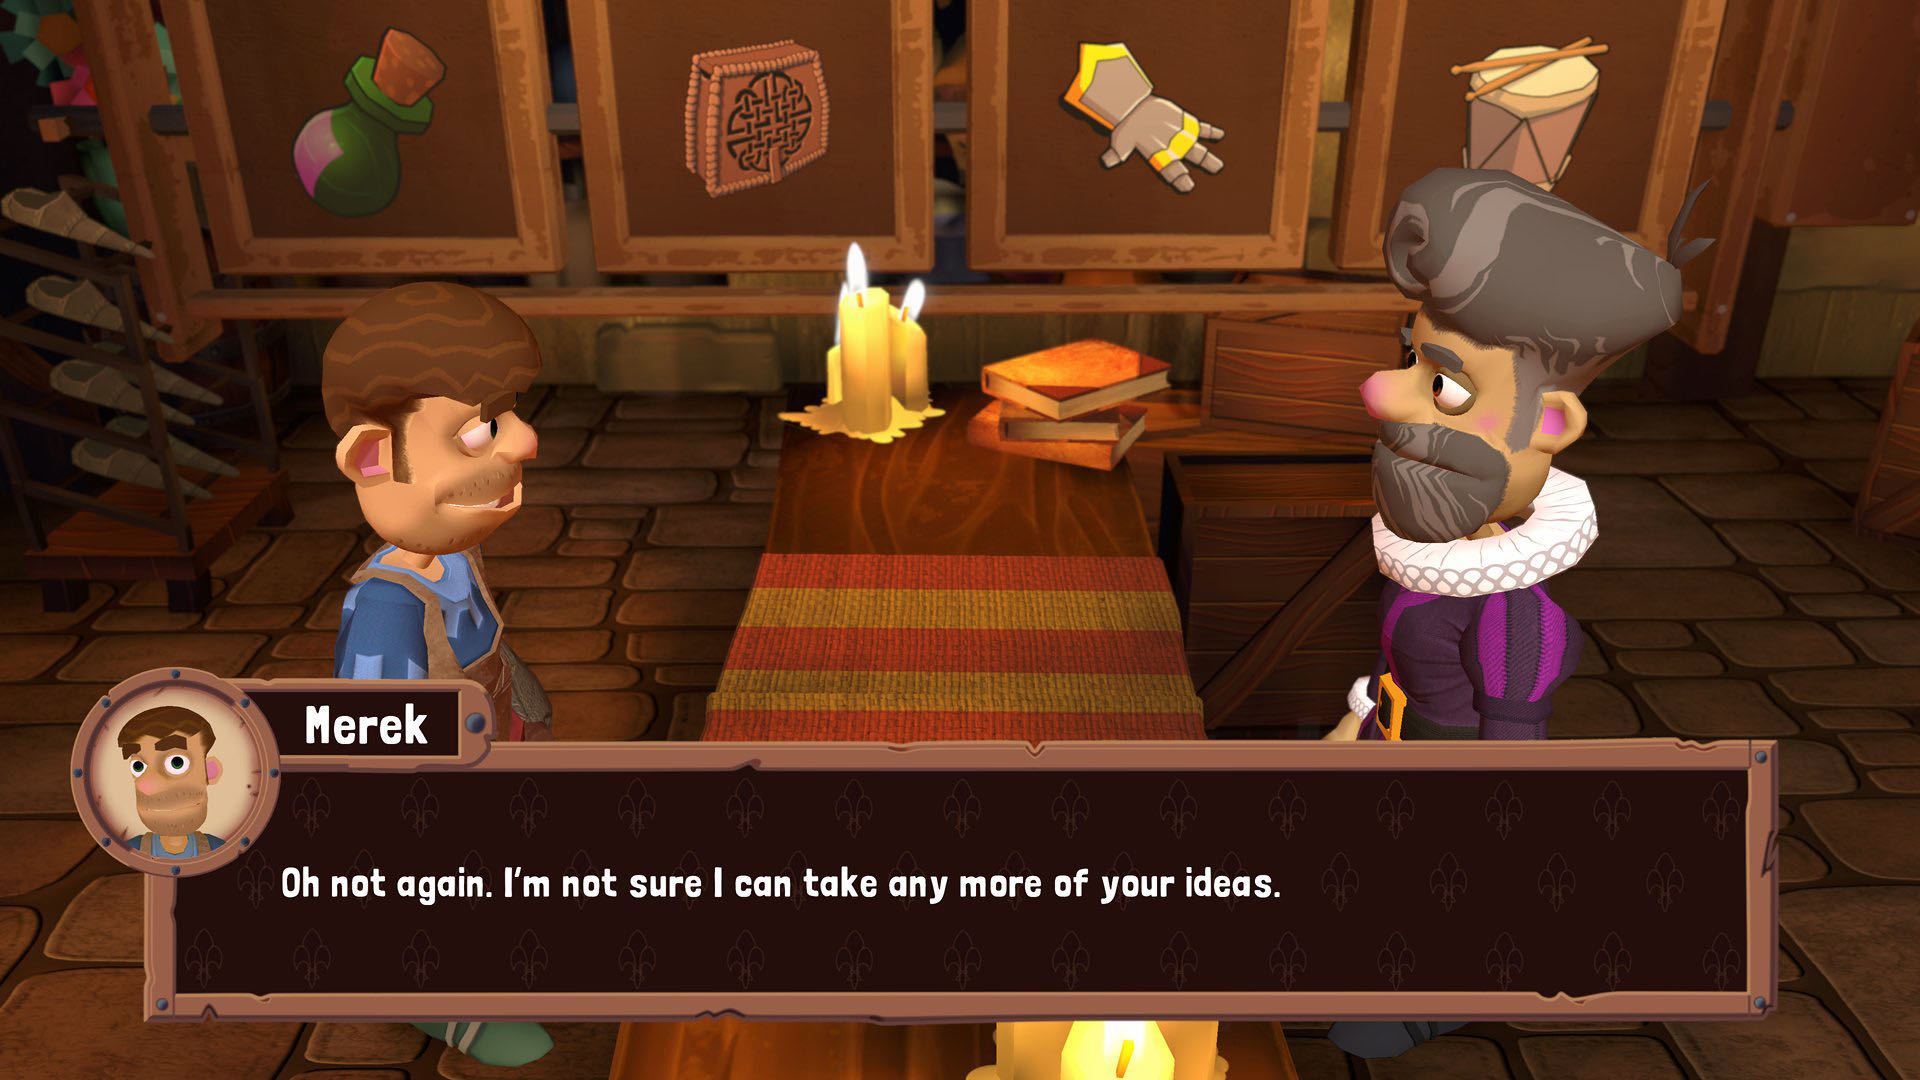 """A screenshot from Merek's Market, showing a conversation between you and a lavishly-dressed customer. You're saying """"Oh not again, I'm not sure I can take any more of your ideas."""""""